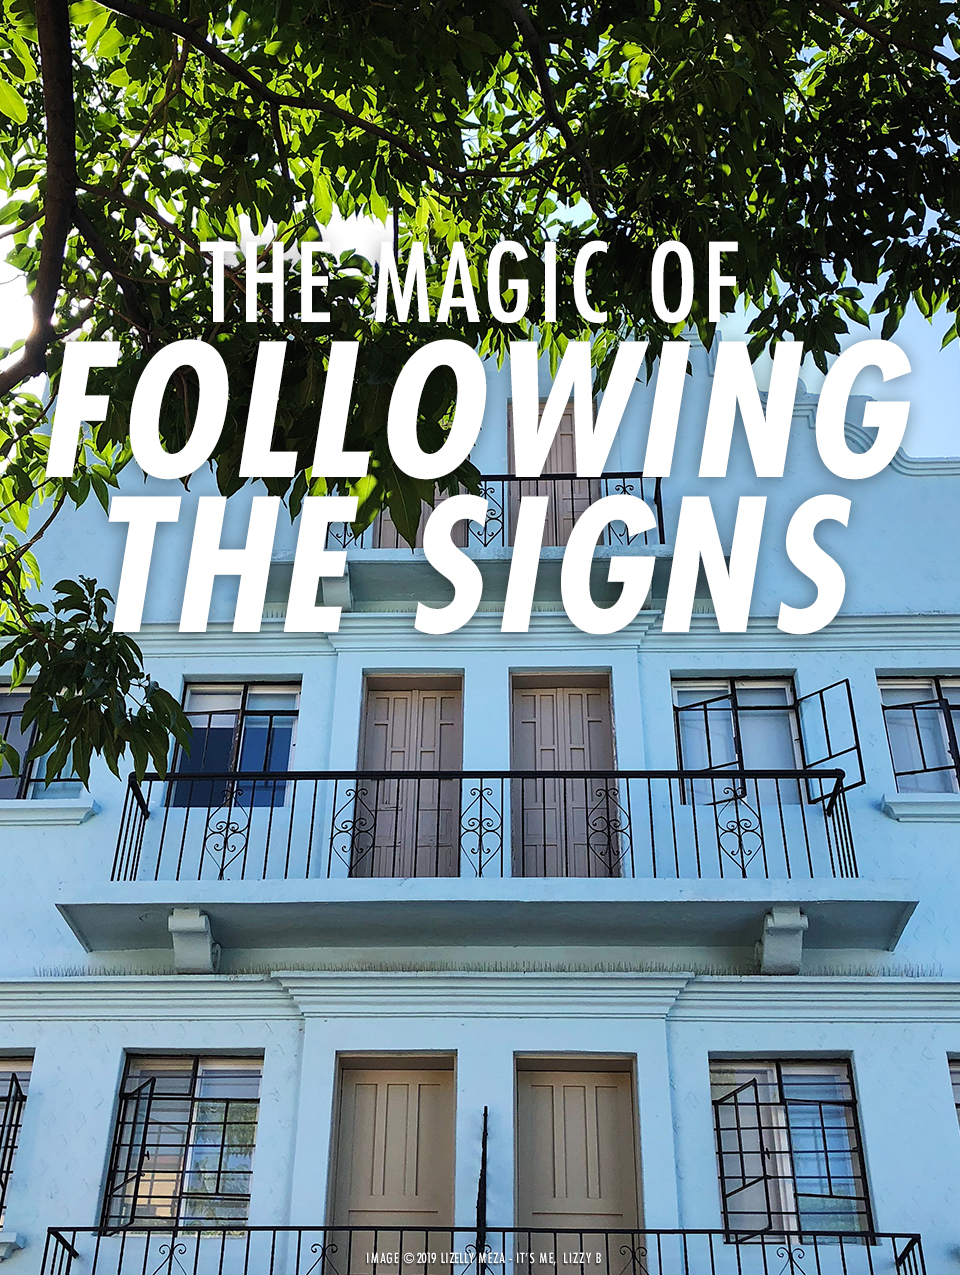 The Magic of Following the Signs // It's Me, Lizzy B - Musings on Life, Business, & The Pursuit of Curiosity // Personal blog of Lizelly Meza